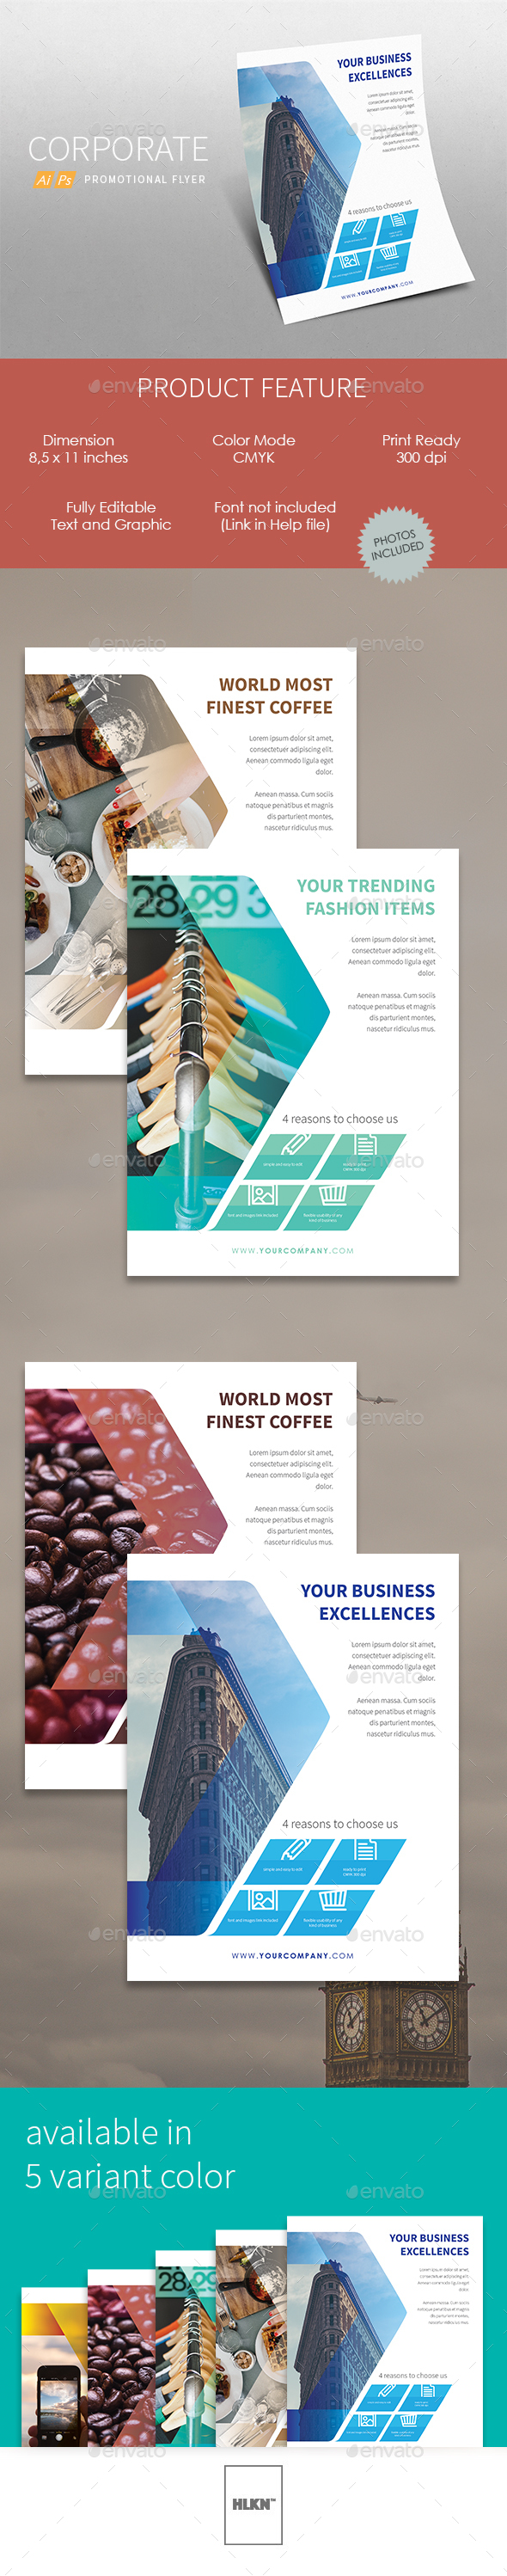 Promotional Corporate Flyer (v.2) - Corporate Flyers